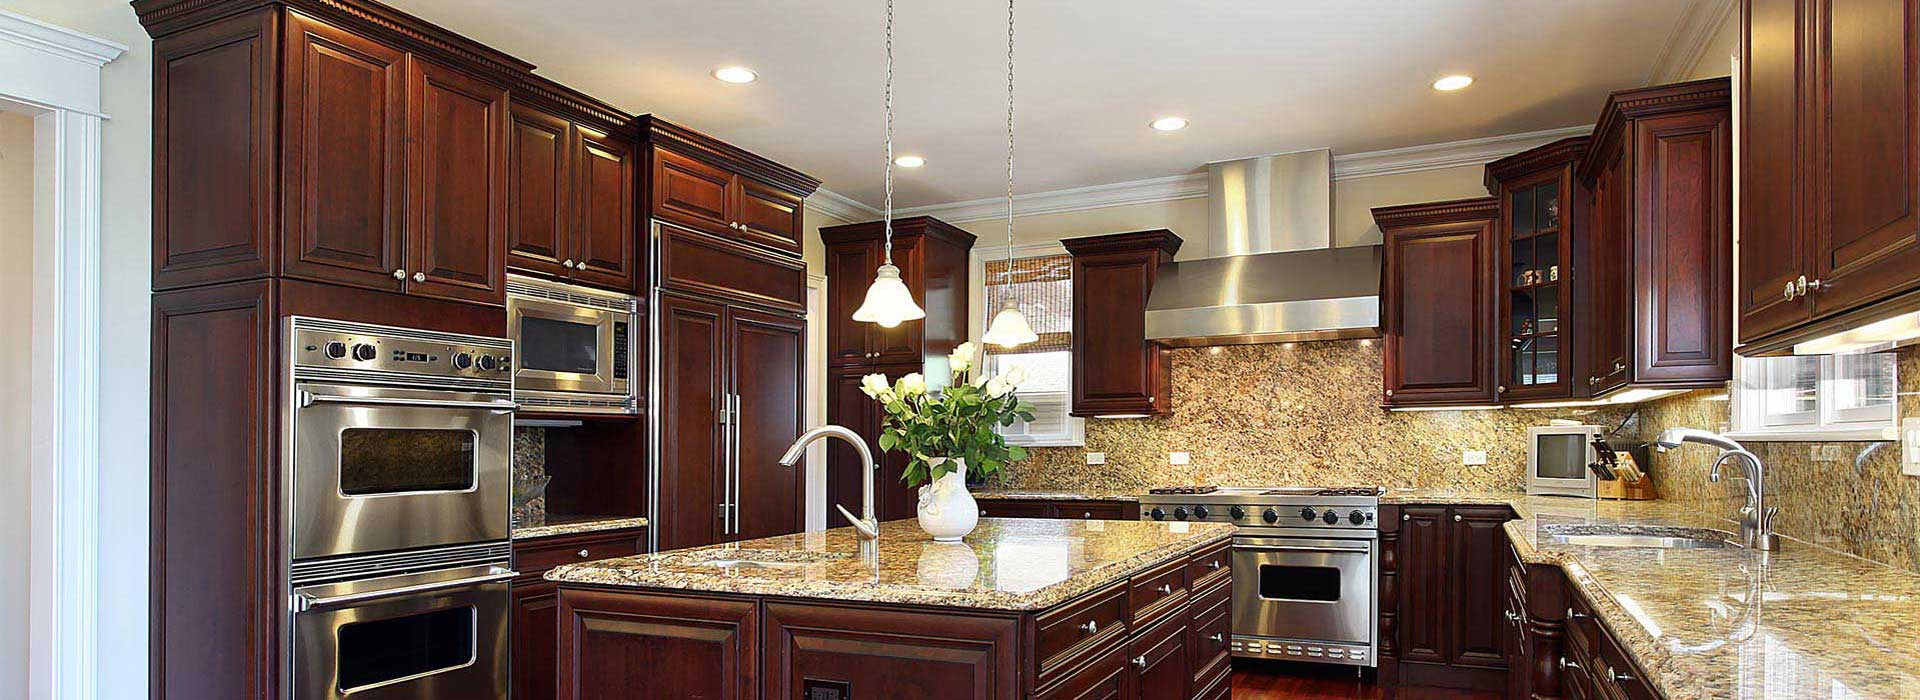 new look kitchen cabinet refacing. Interior Design Ideas. Home Design Ideas